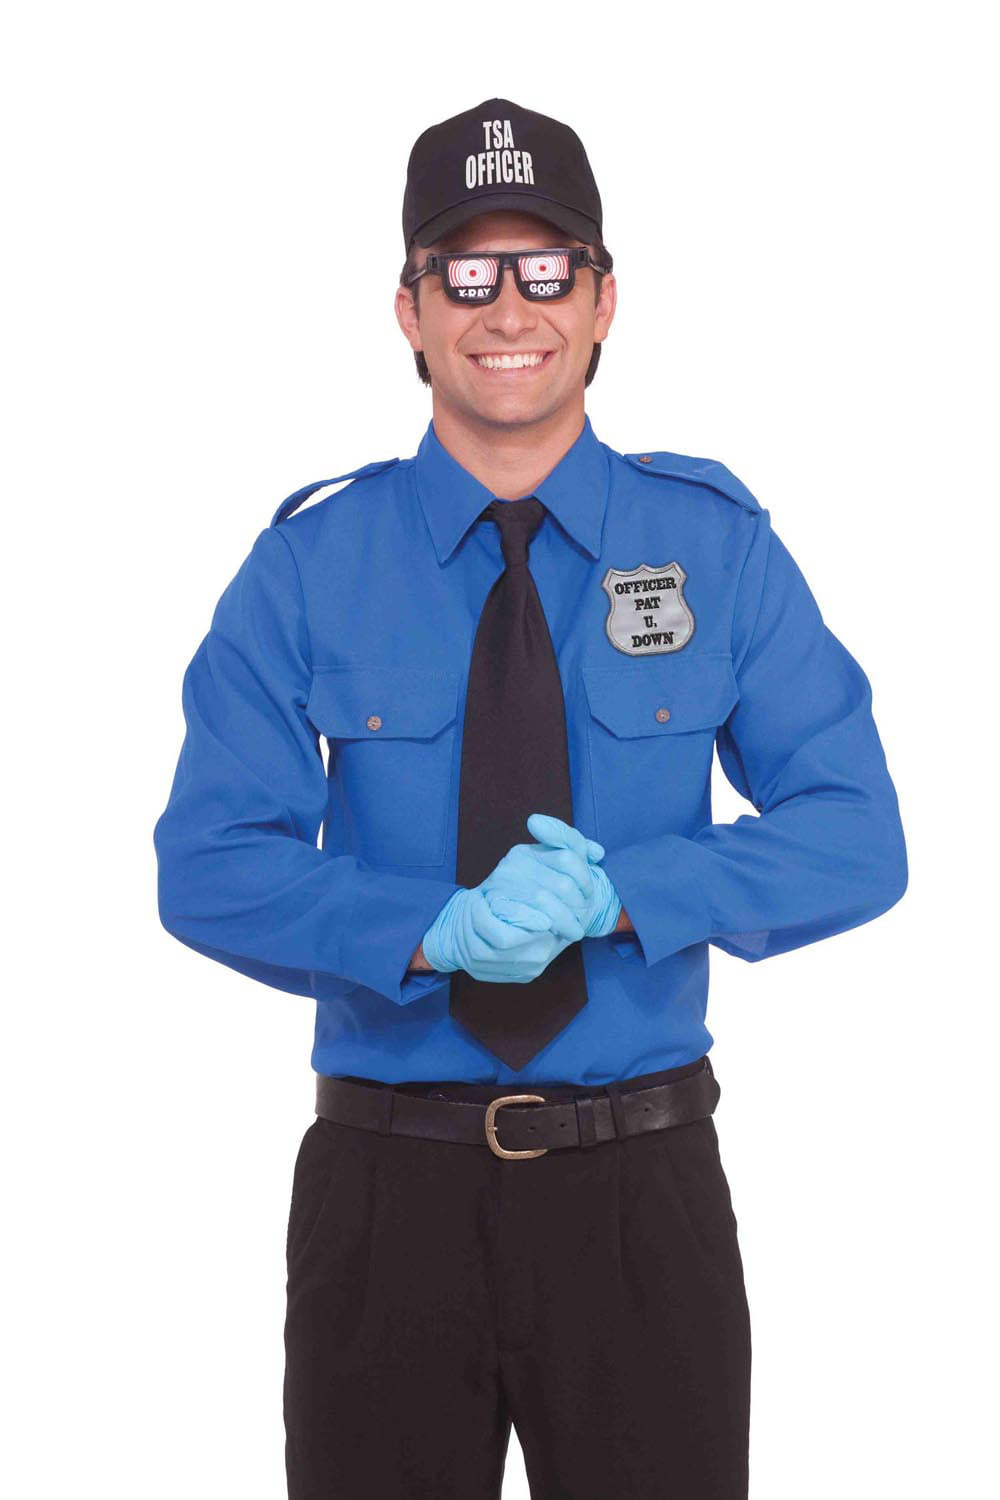 tsa transportation security officer funny adult costume walmartcom